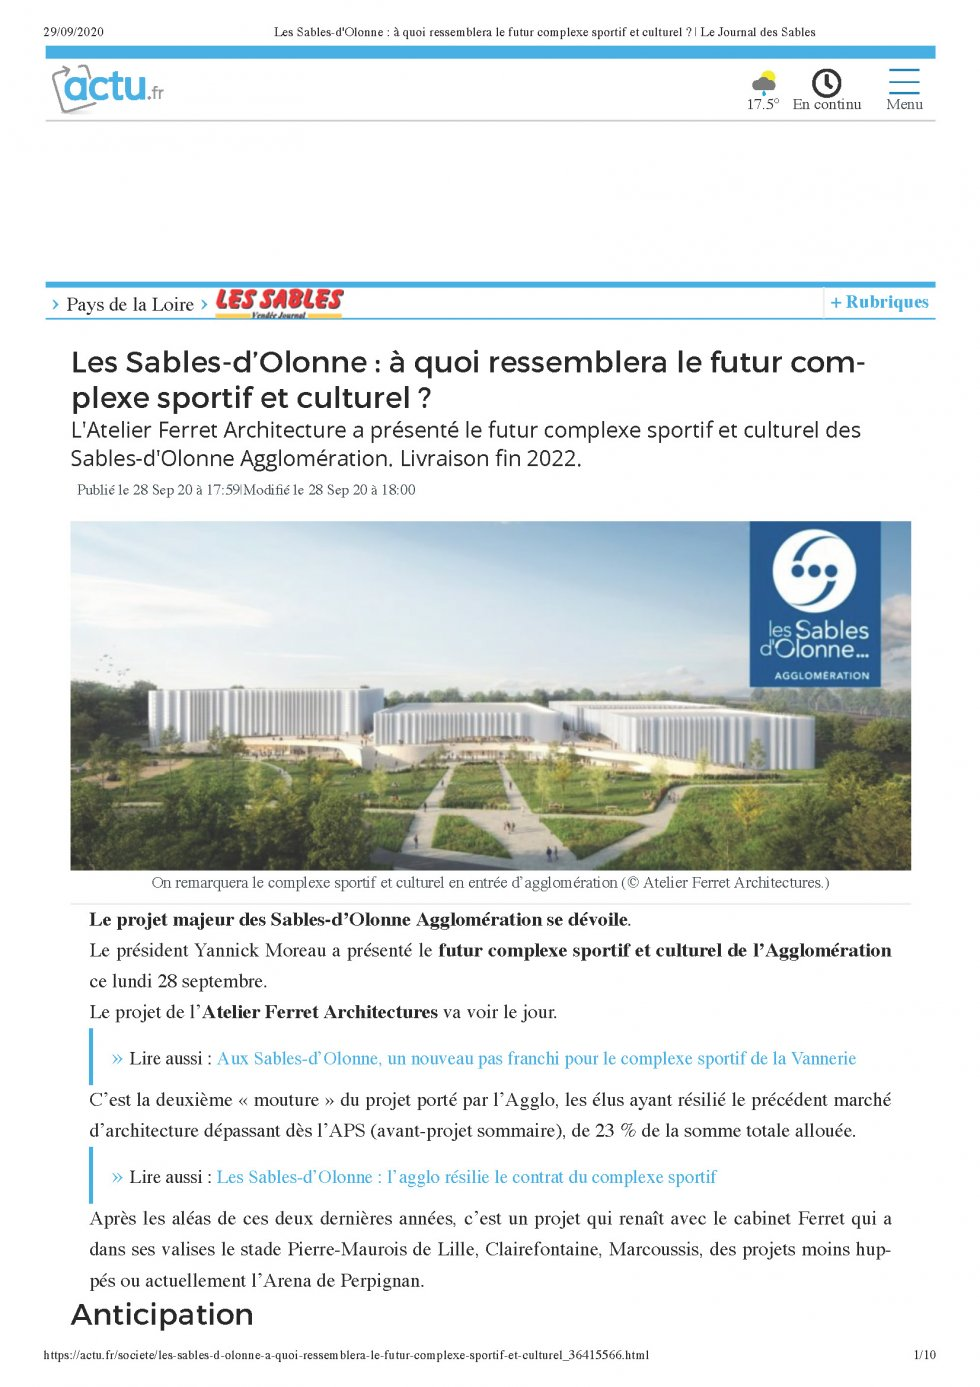 Les Sables-d'Olonne : How does the future sports and cultural complex center look like?